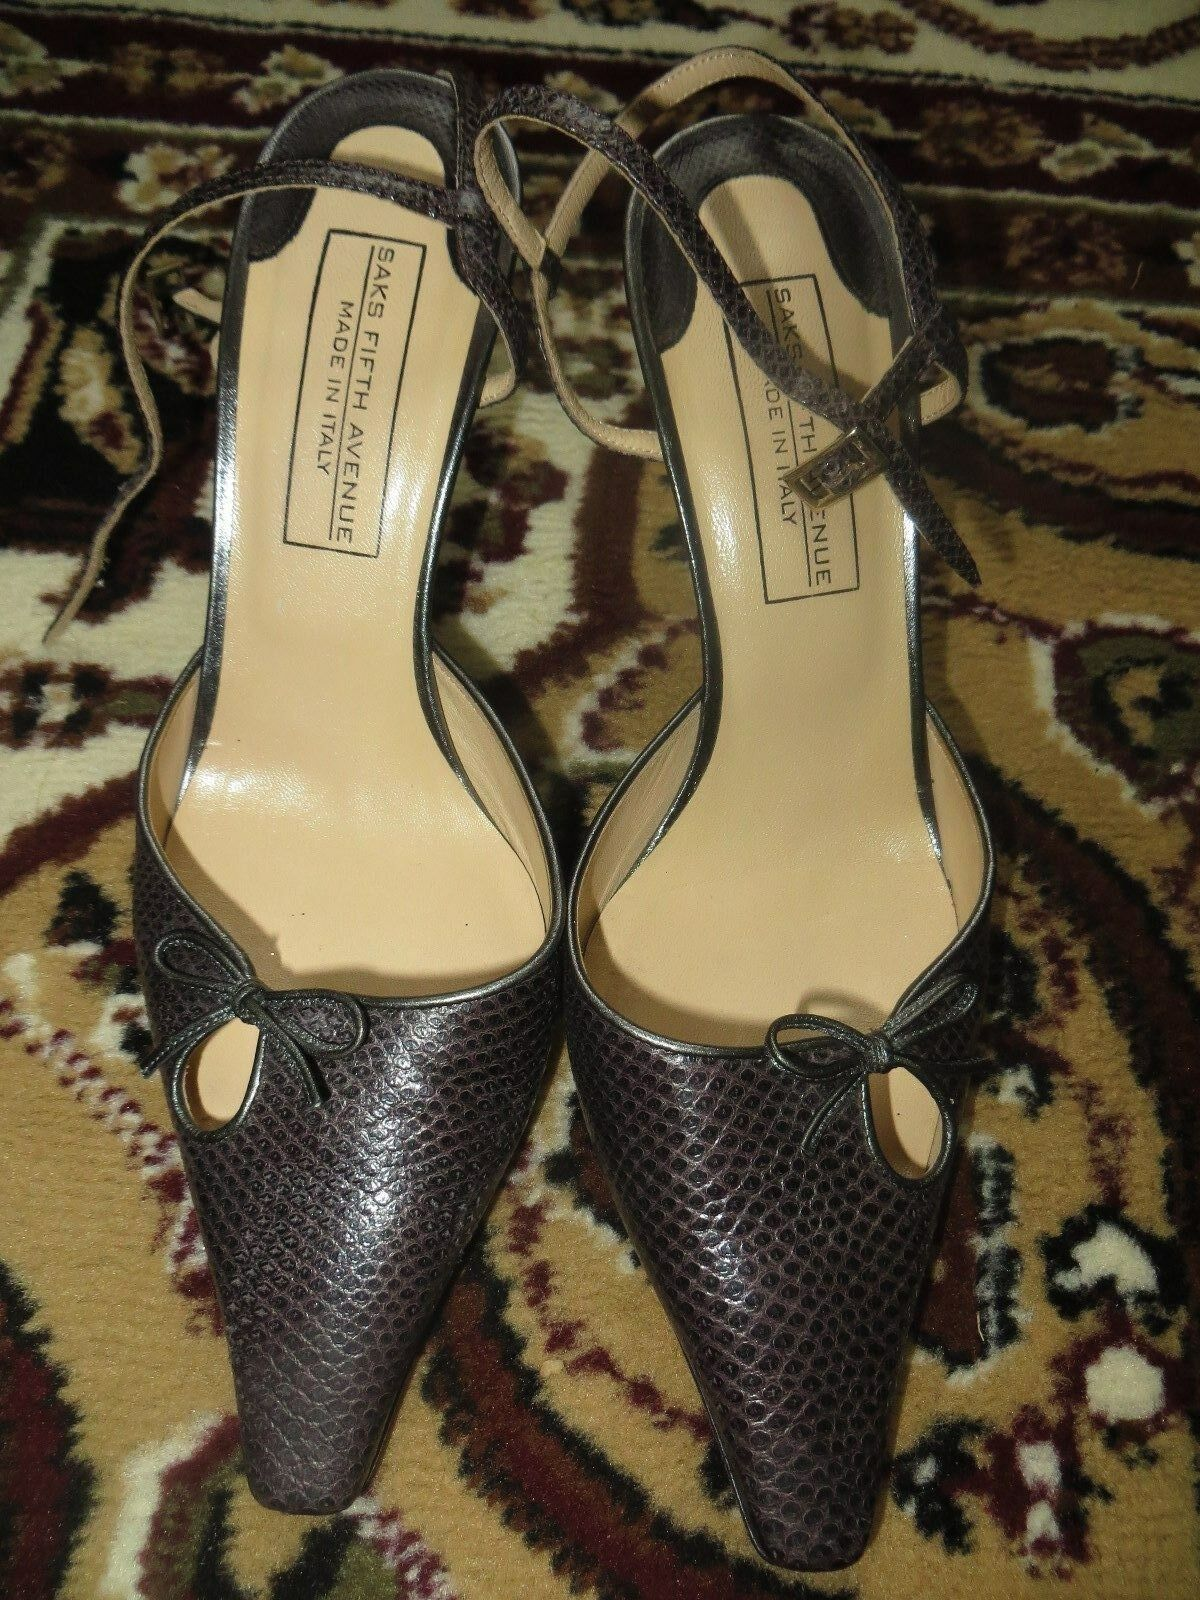 Saks Fifth Avenue Made Italy Genuine Karung High Heel Pump Shoes 39.5 EUR / 8